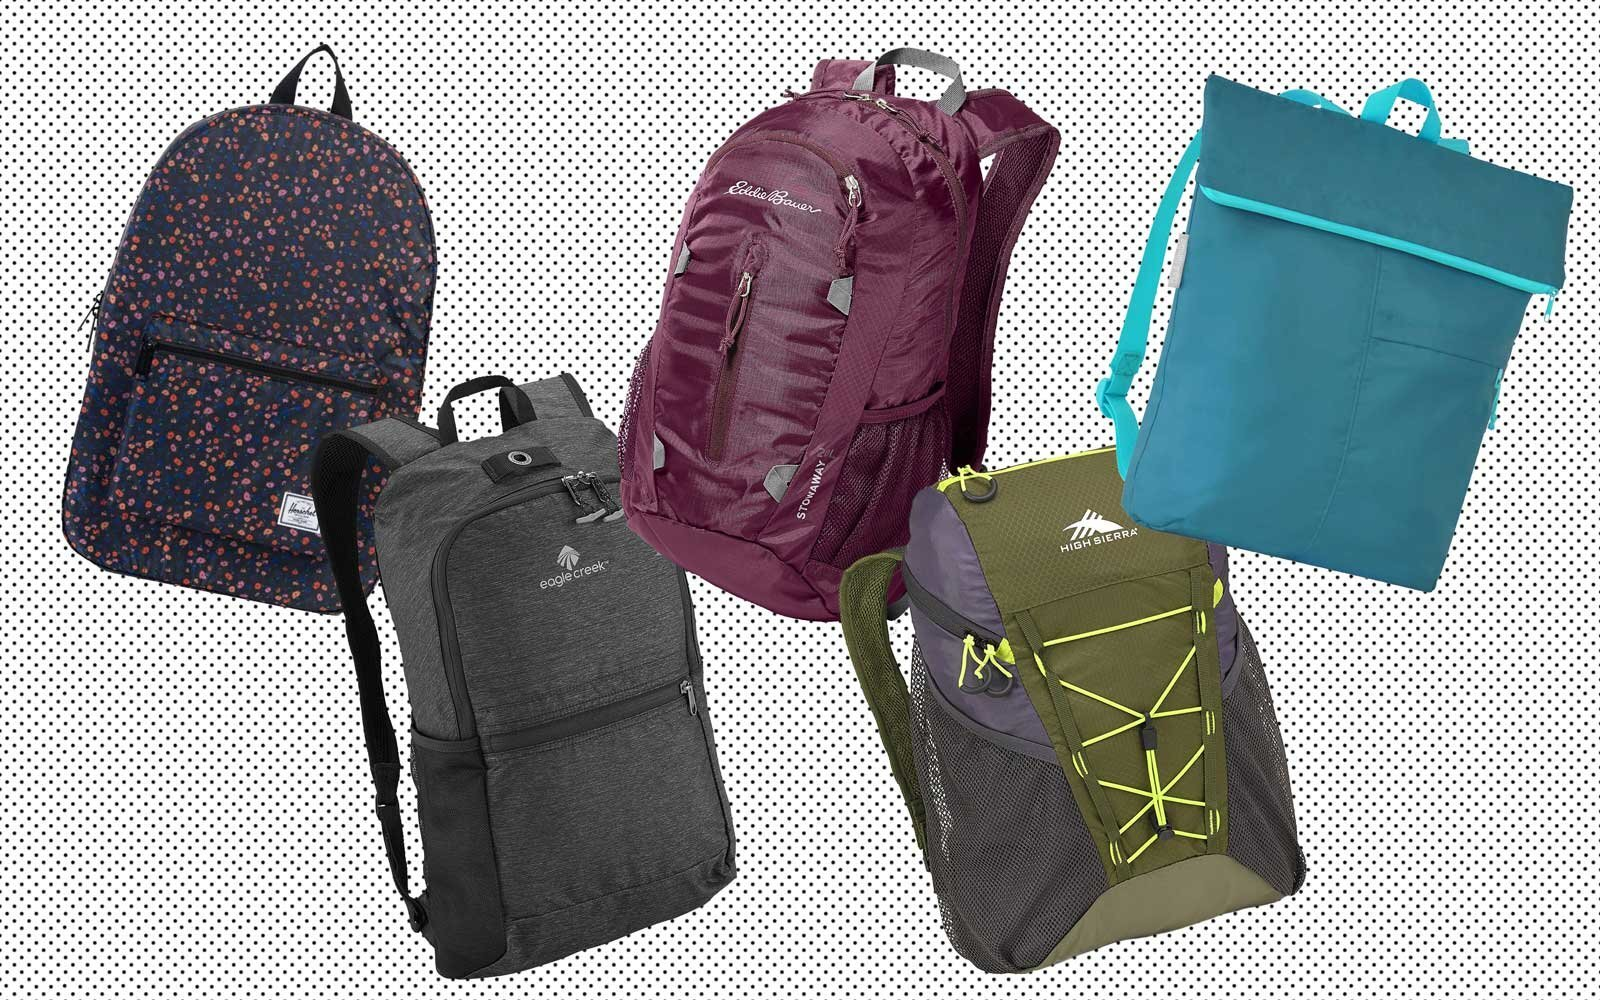 7ee3aac24ff0 The 11 Best Packable Backpacks for Travelers | Travel + Leisure